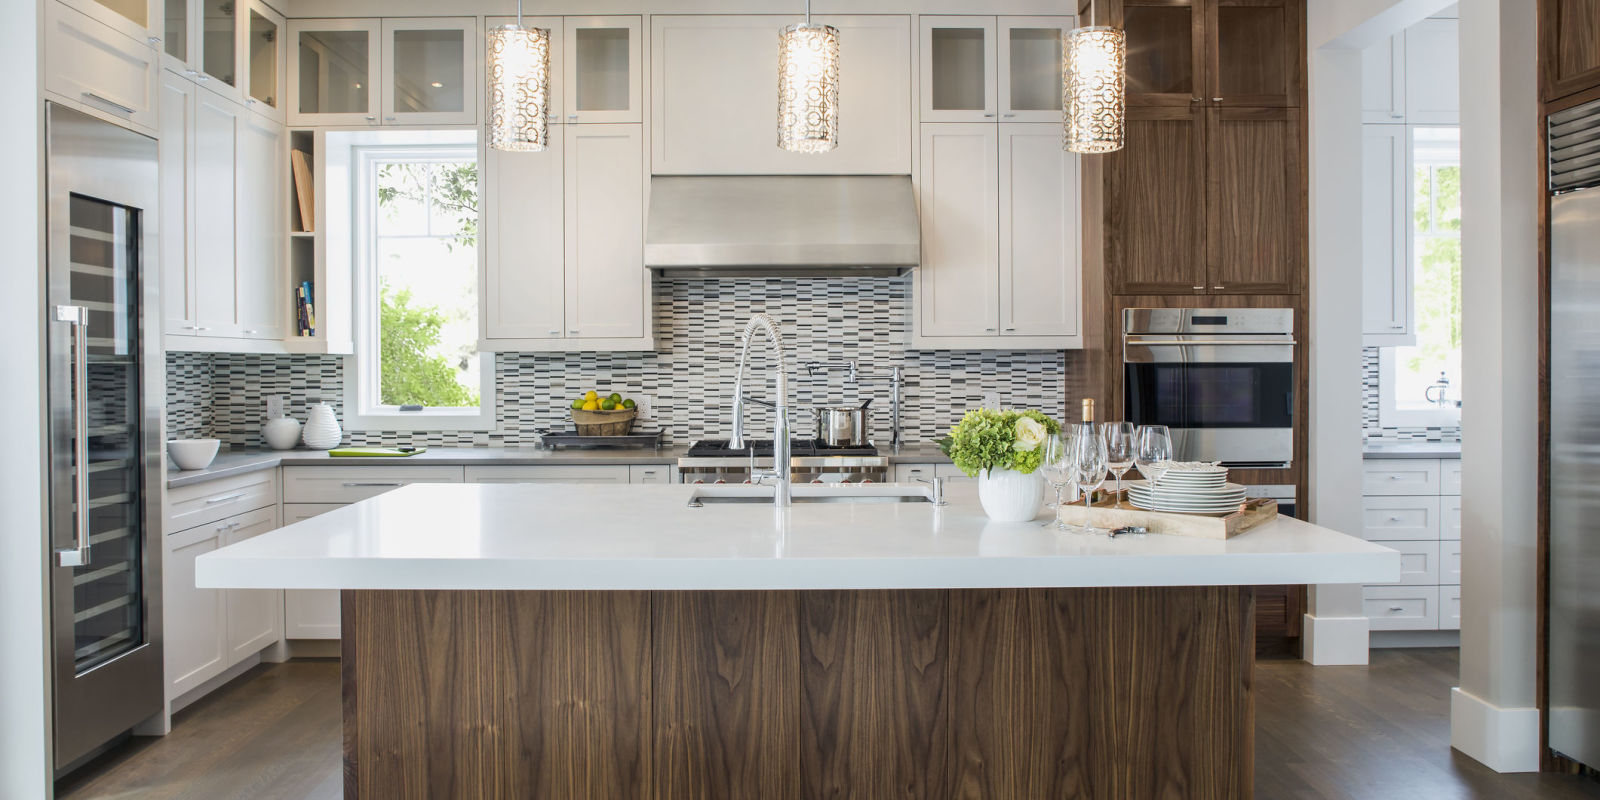 Kitchen cabinet trends to avoid - Kitchen With White Surface Tops And Minimalist Design